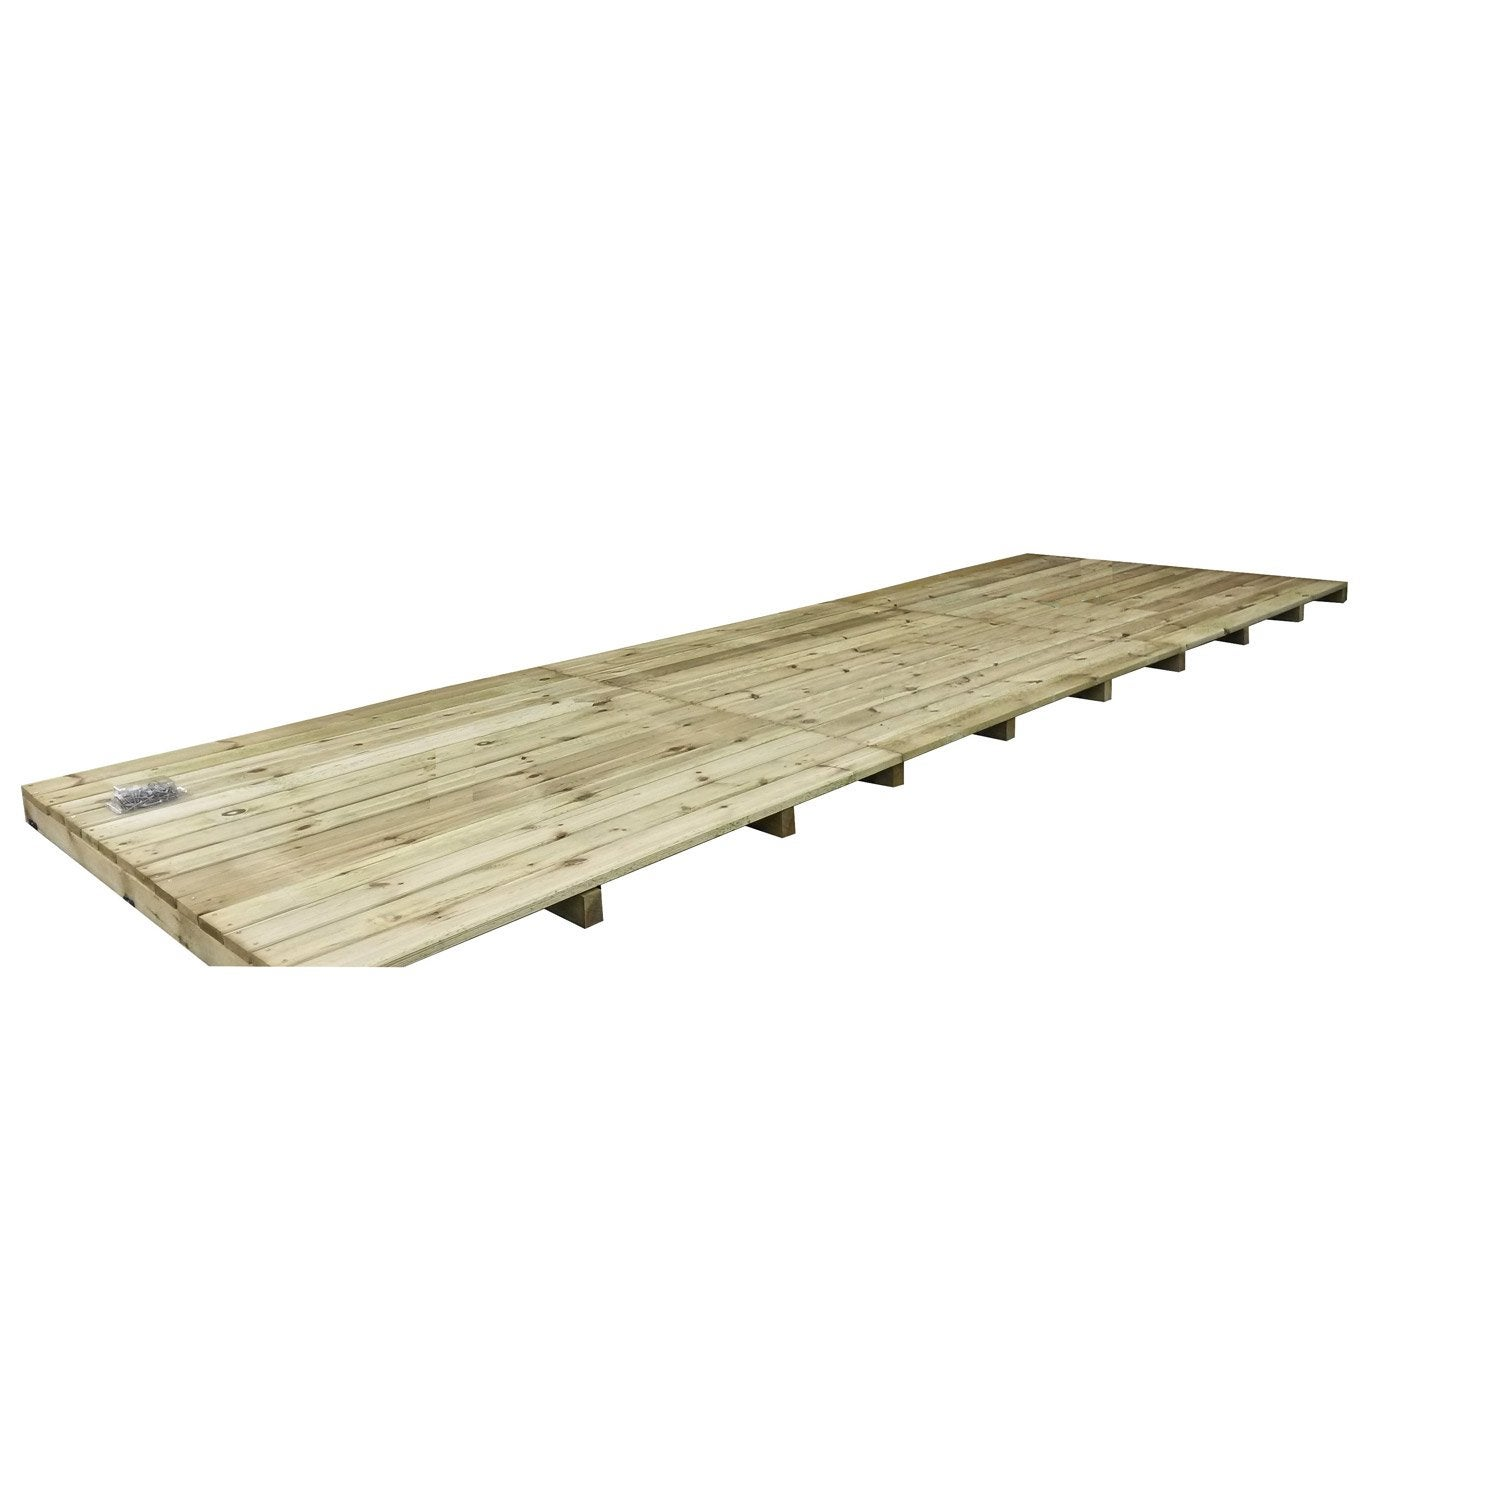 terrasse kit en bois pin naturel cm x cm x ep